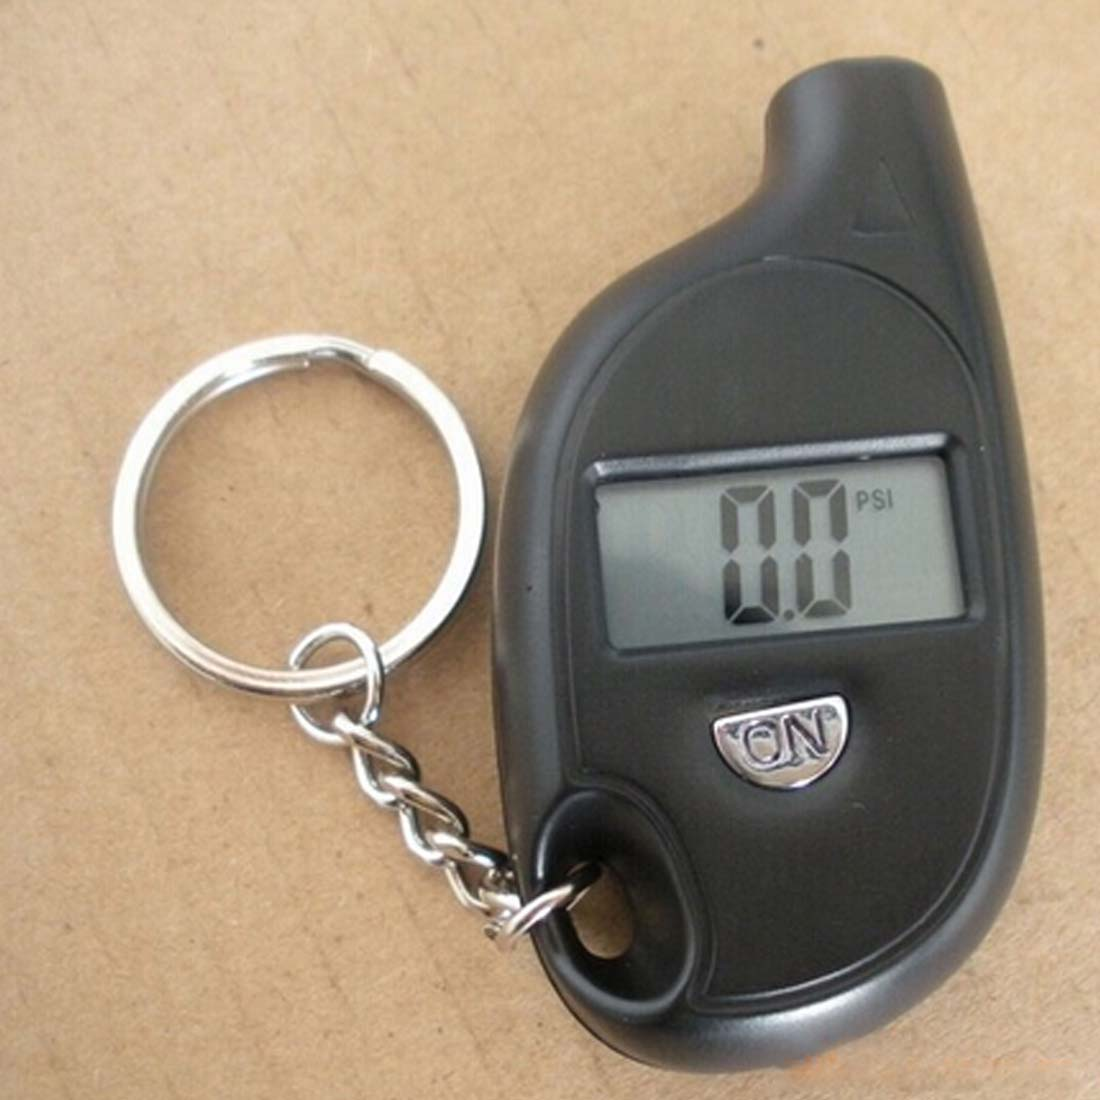 Portable LCD Digital Auto Wheel Tire Keychain Air Pressure Gauge Meter Test Tyre Tester For Vehicle Motorcycle Car